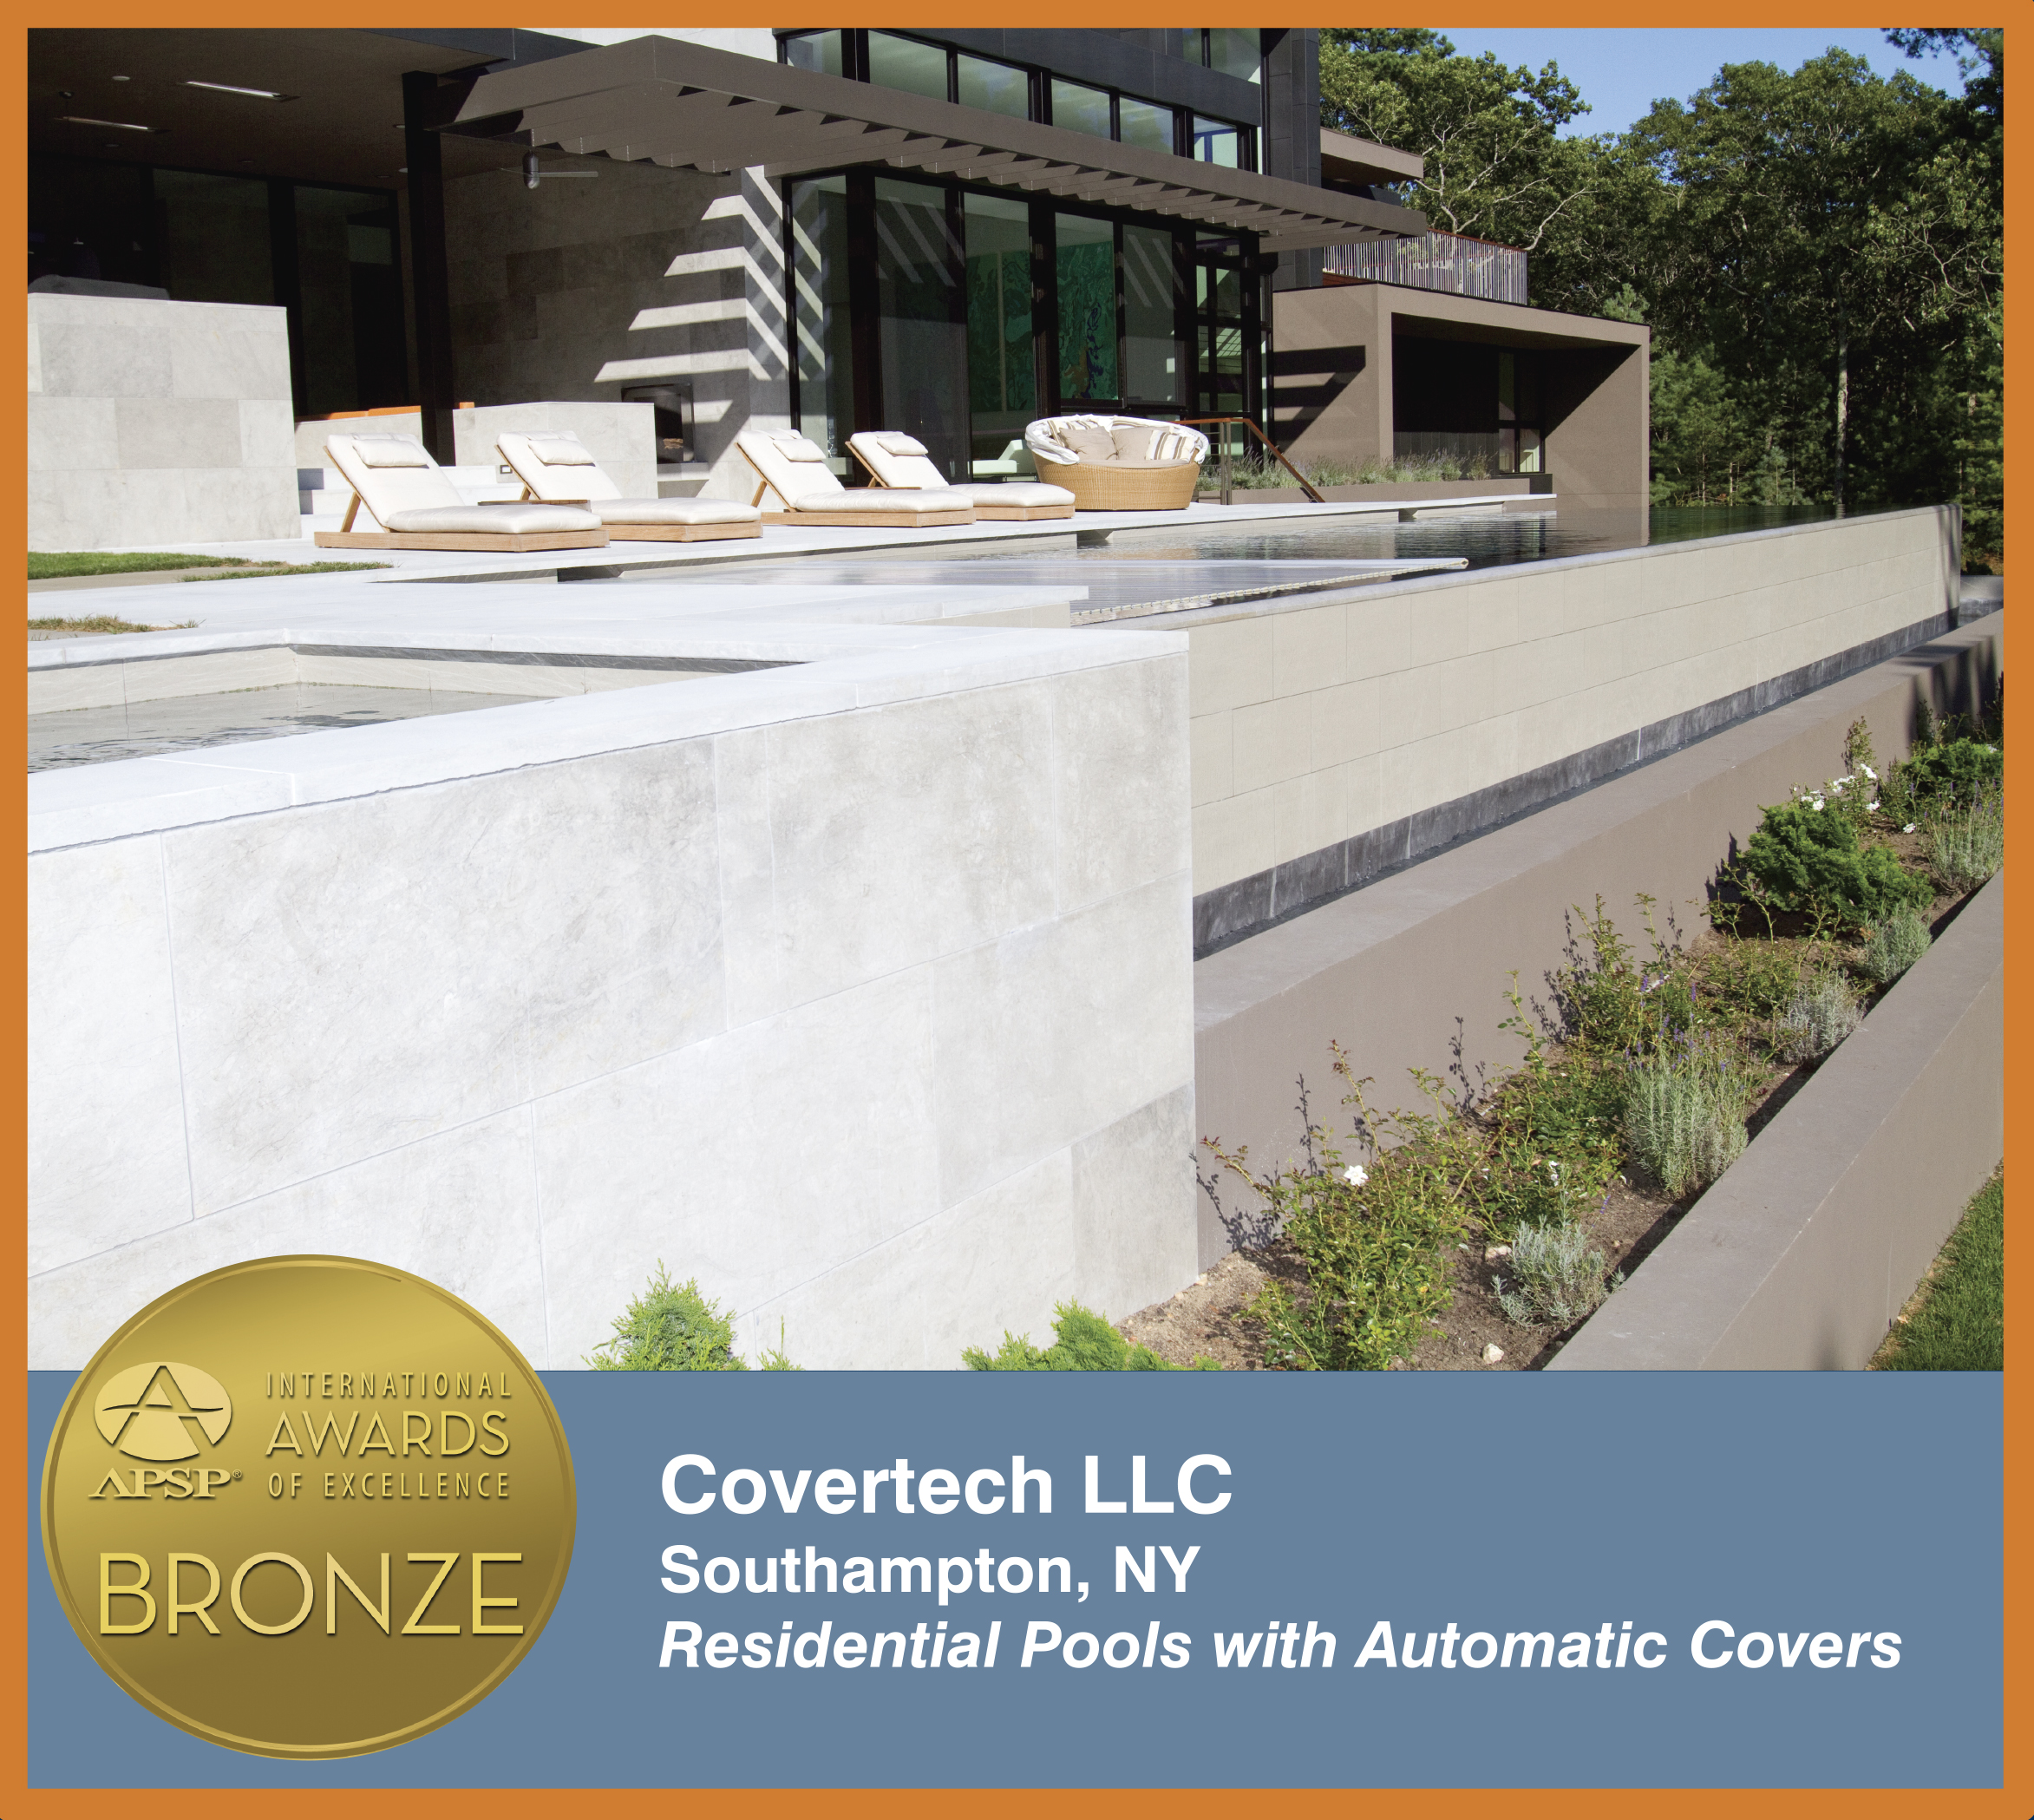 Covertech Grando automatic rigid slated pool cover International APSP Bronze1 Award 2014